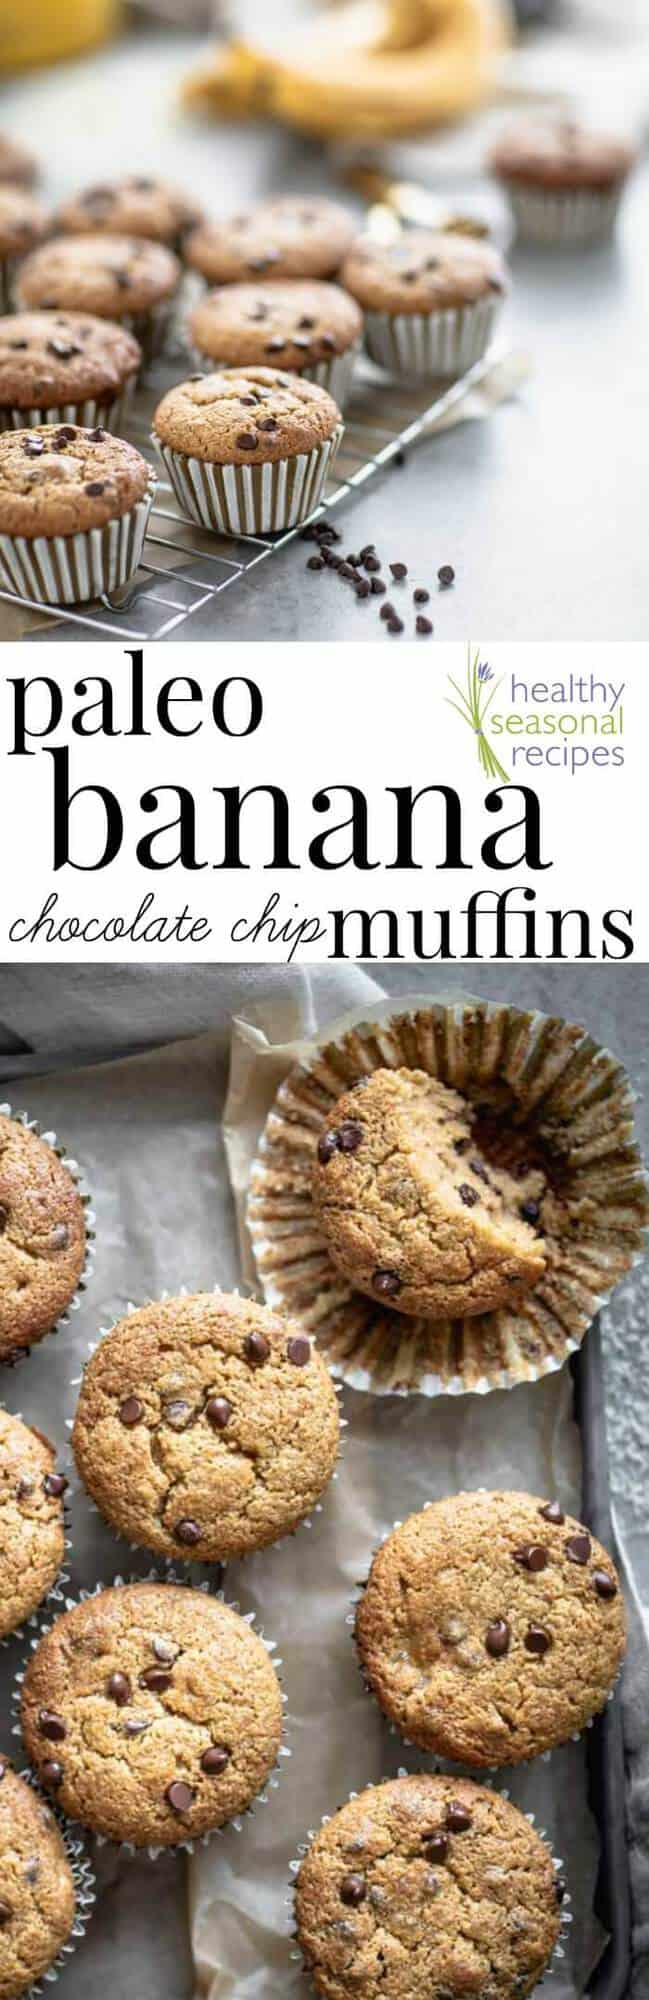 Paleo Banana Muffins with chocolate chips. Made with almond flour and sweetened with maple syrup. #glutenfree #paleo #baking #muffins #healthy #dairyfree #healthyseasonal